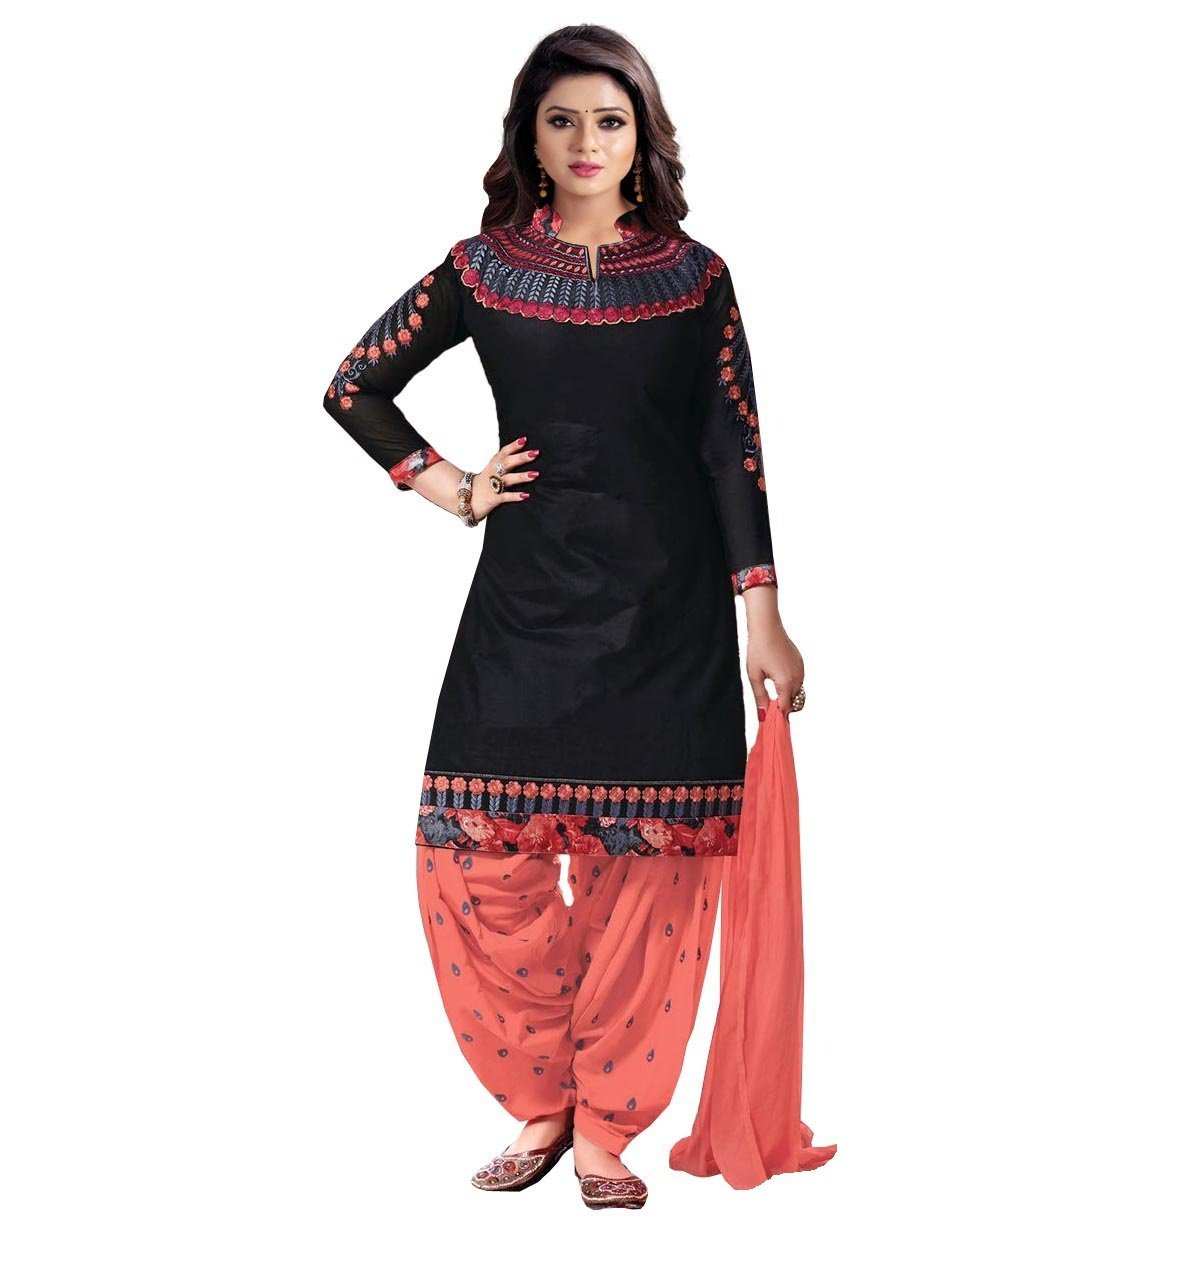 ac3aba22eb Crazy Women's Embroidered Pure Cotton Semi Stitched Patiala Salwar Suits  (Black, Free Size) - Gia Designer